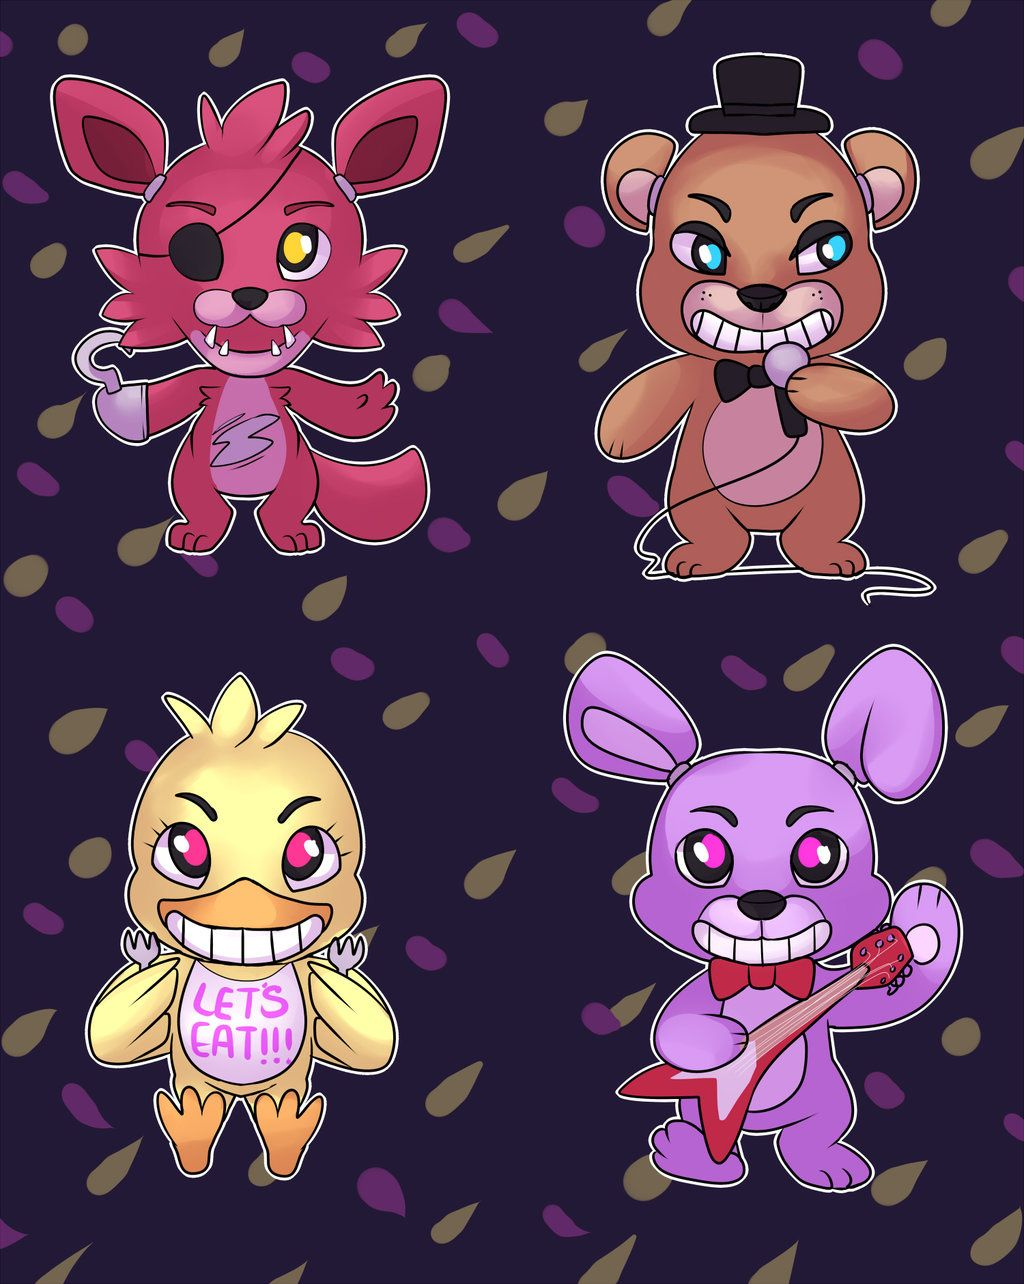 Kawaii Nights At Freddy's by PulsefireKitten.deviantart.com on @deviantART